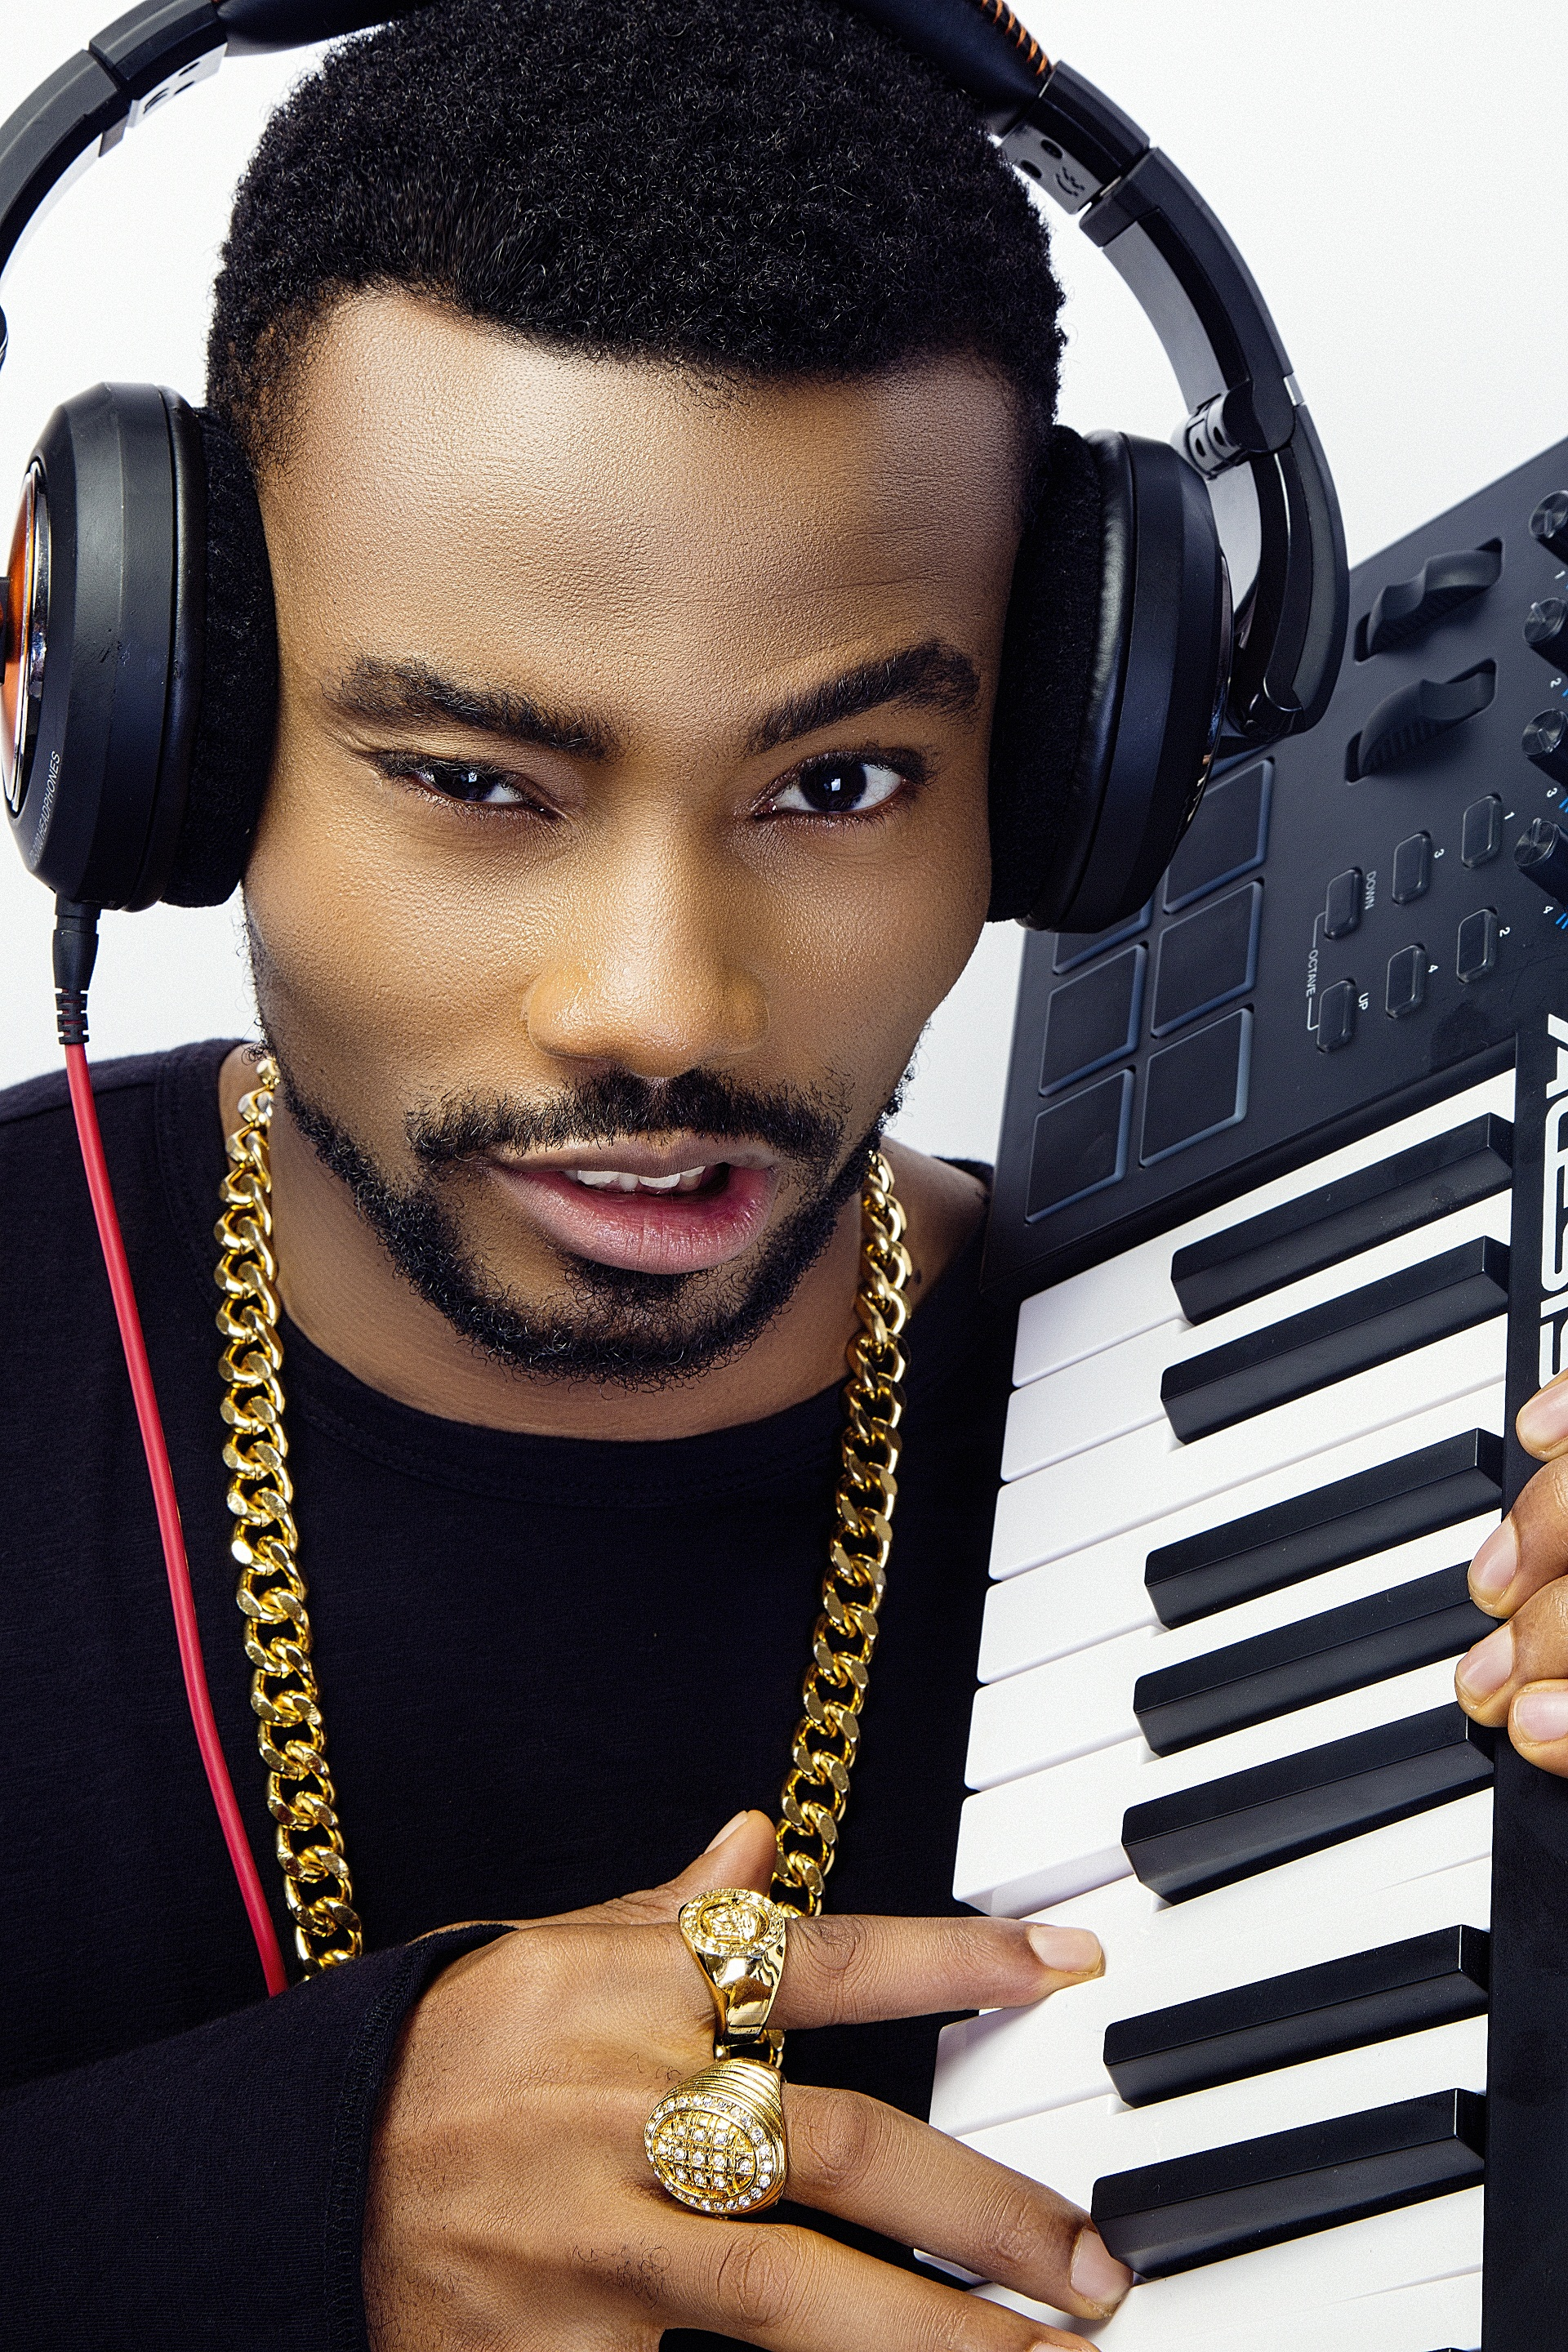 """I Had My Works Discredited In The Past"" – DJ Coublon"